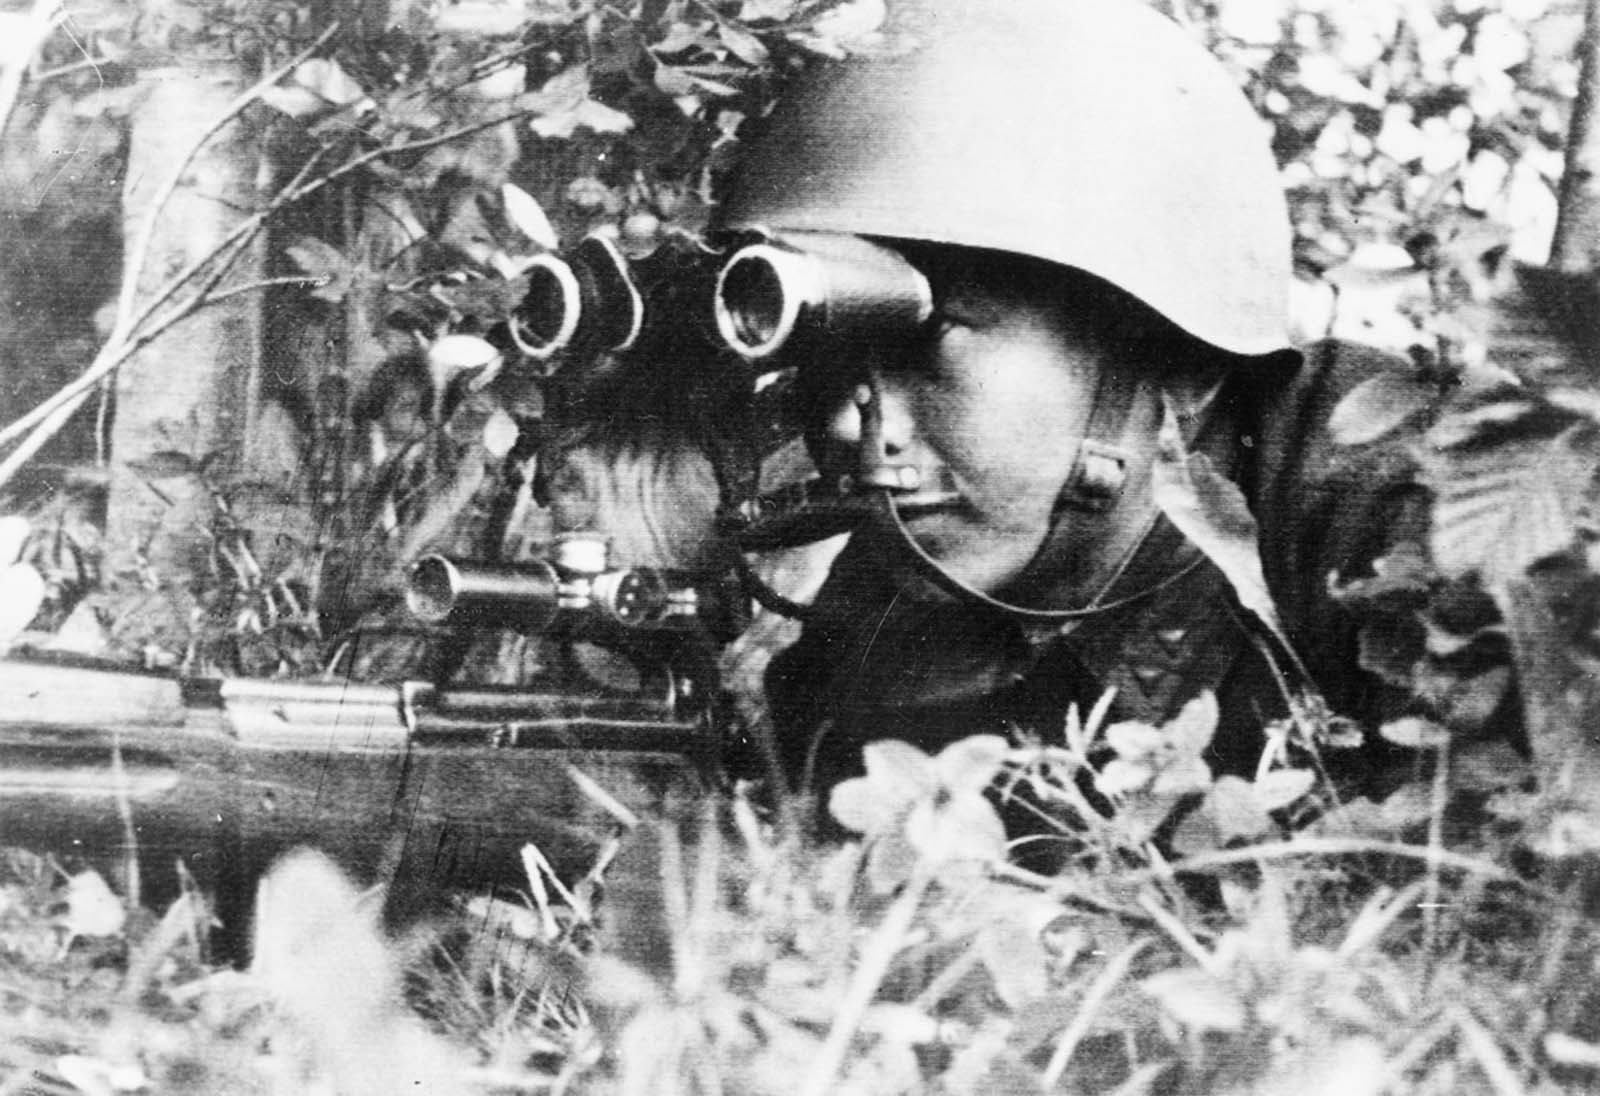 Sergeant P. Dorzhiev, a Russian sniper who killed 181 Germans on the Leningrad front, looking through binoculars, and holding a rifle, sometime in 1942.